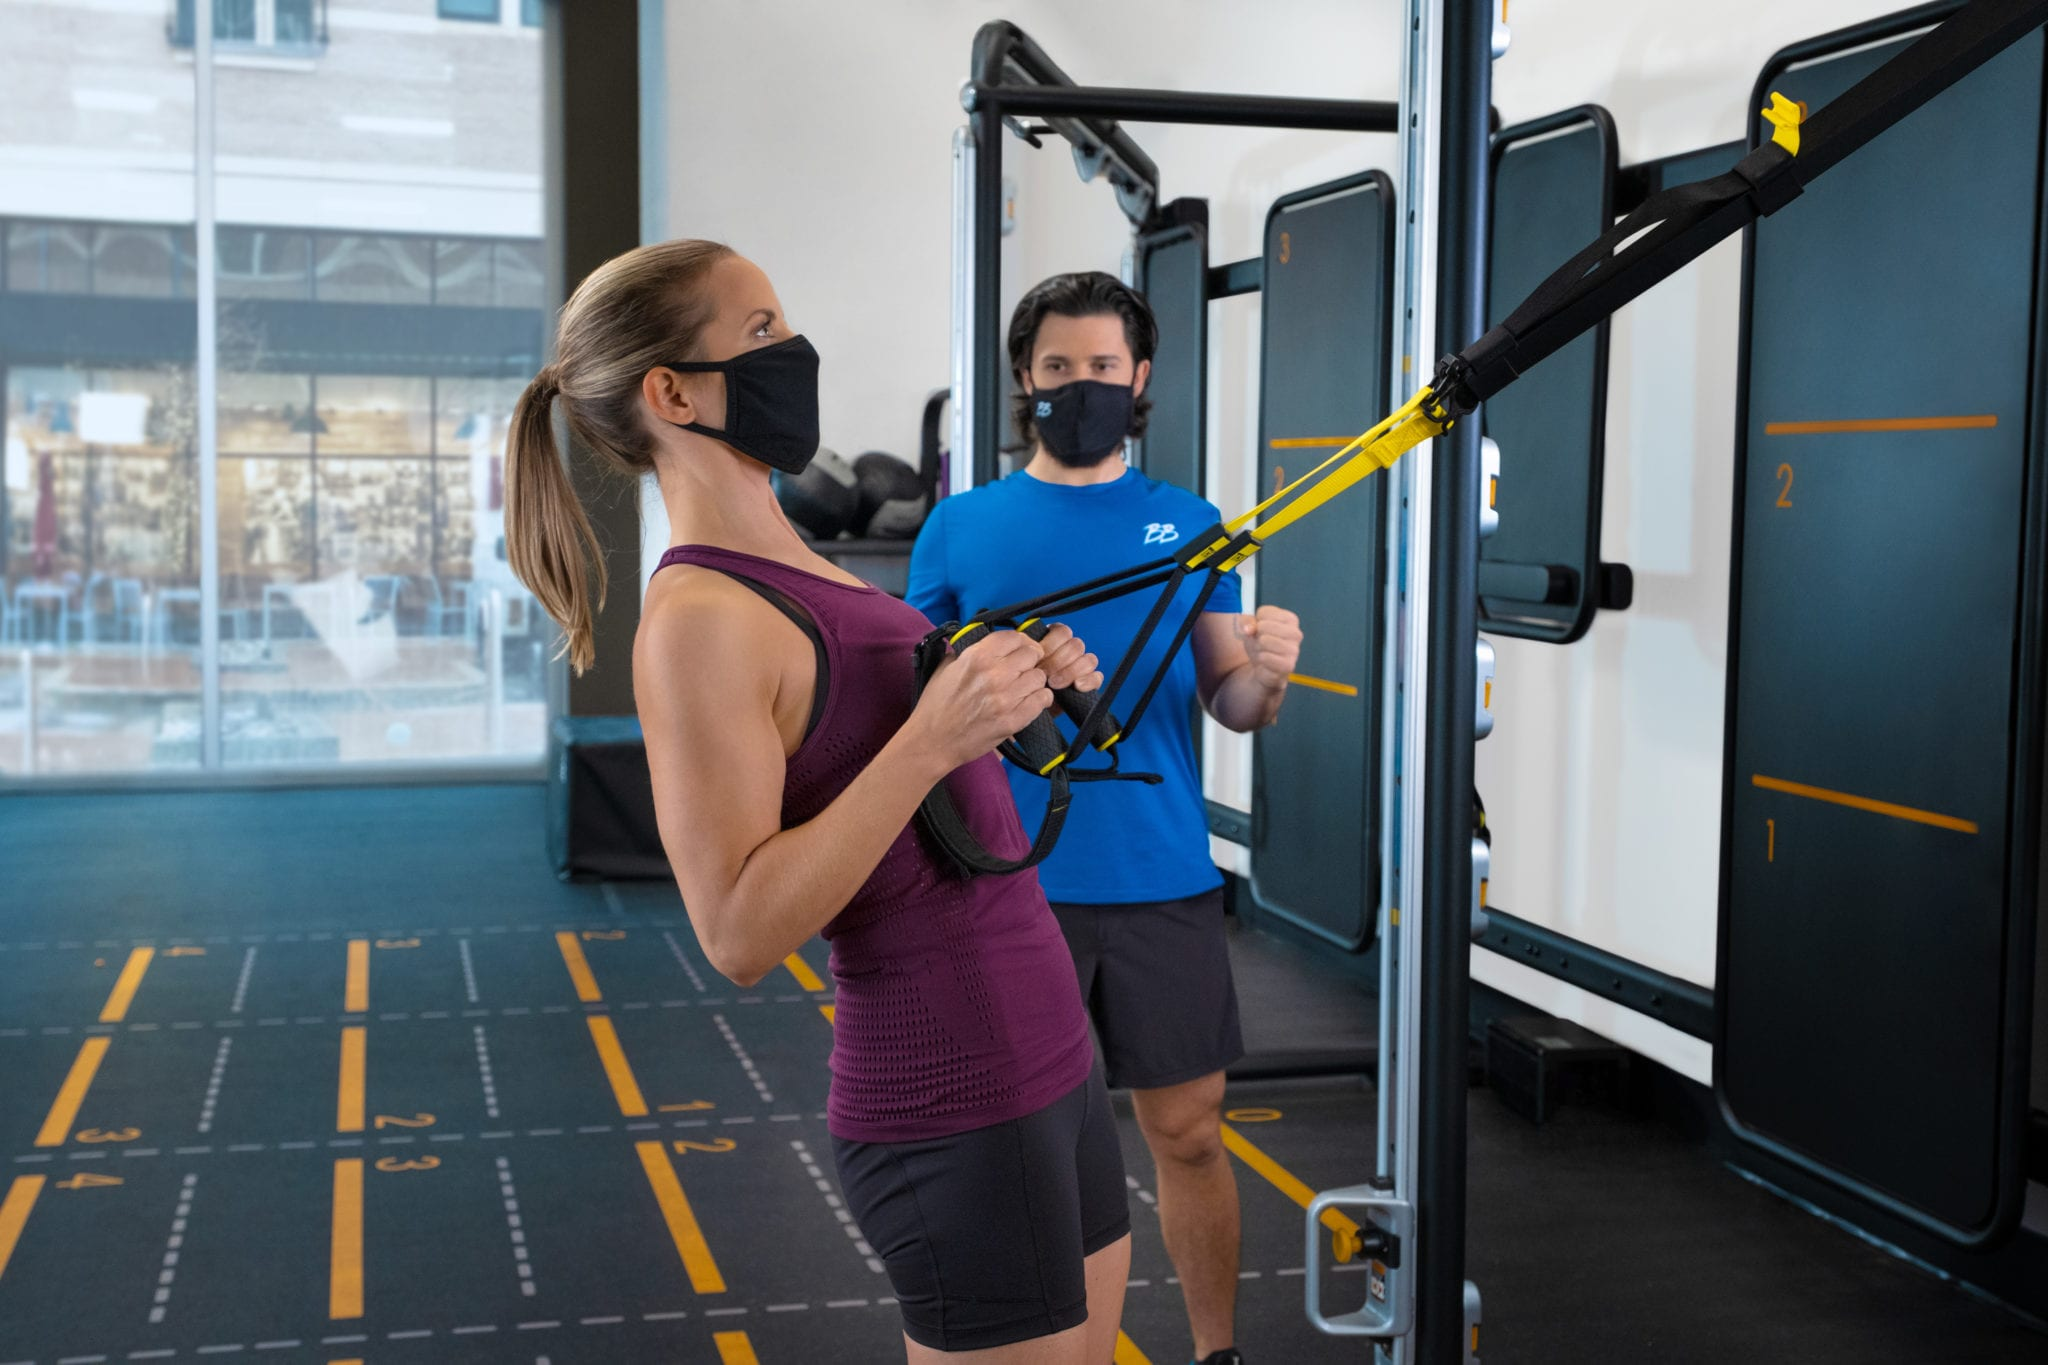 fit female gym member wearing mask using functional training arm equipment while personal trainer with mask advises in health club